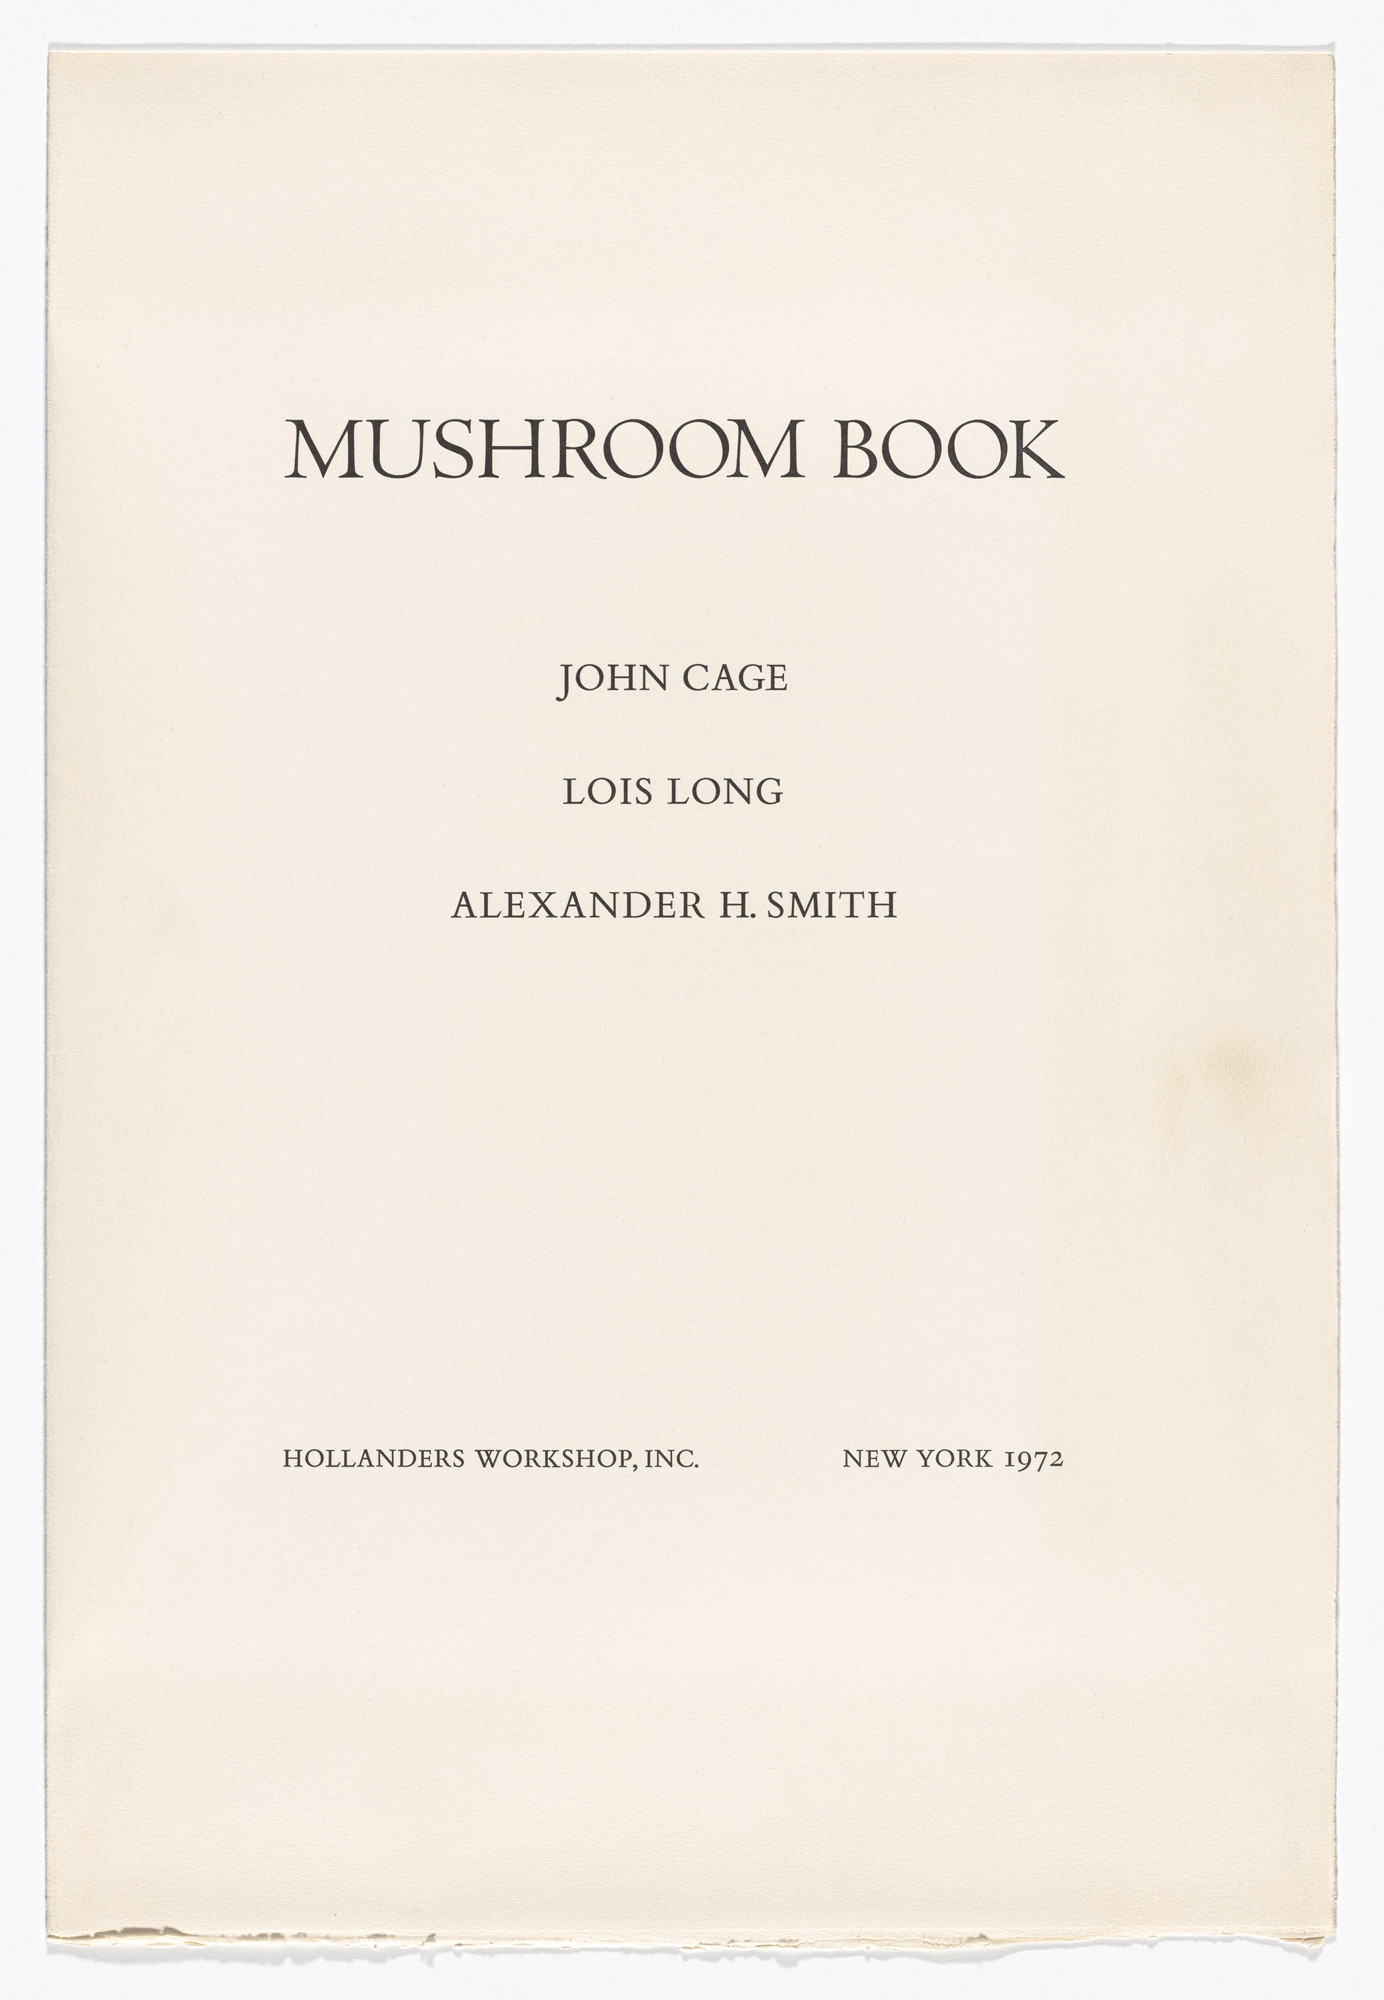 John Cage, Lois Long. Mushroom Book. 1972 (Prints executed August 1971 - May 1972)